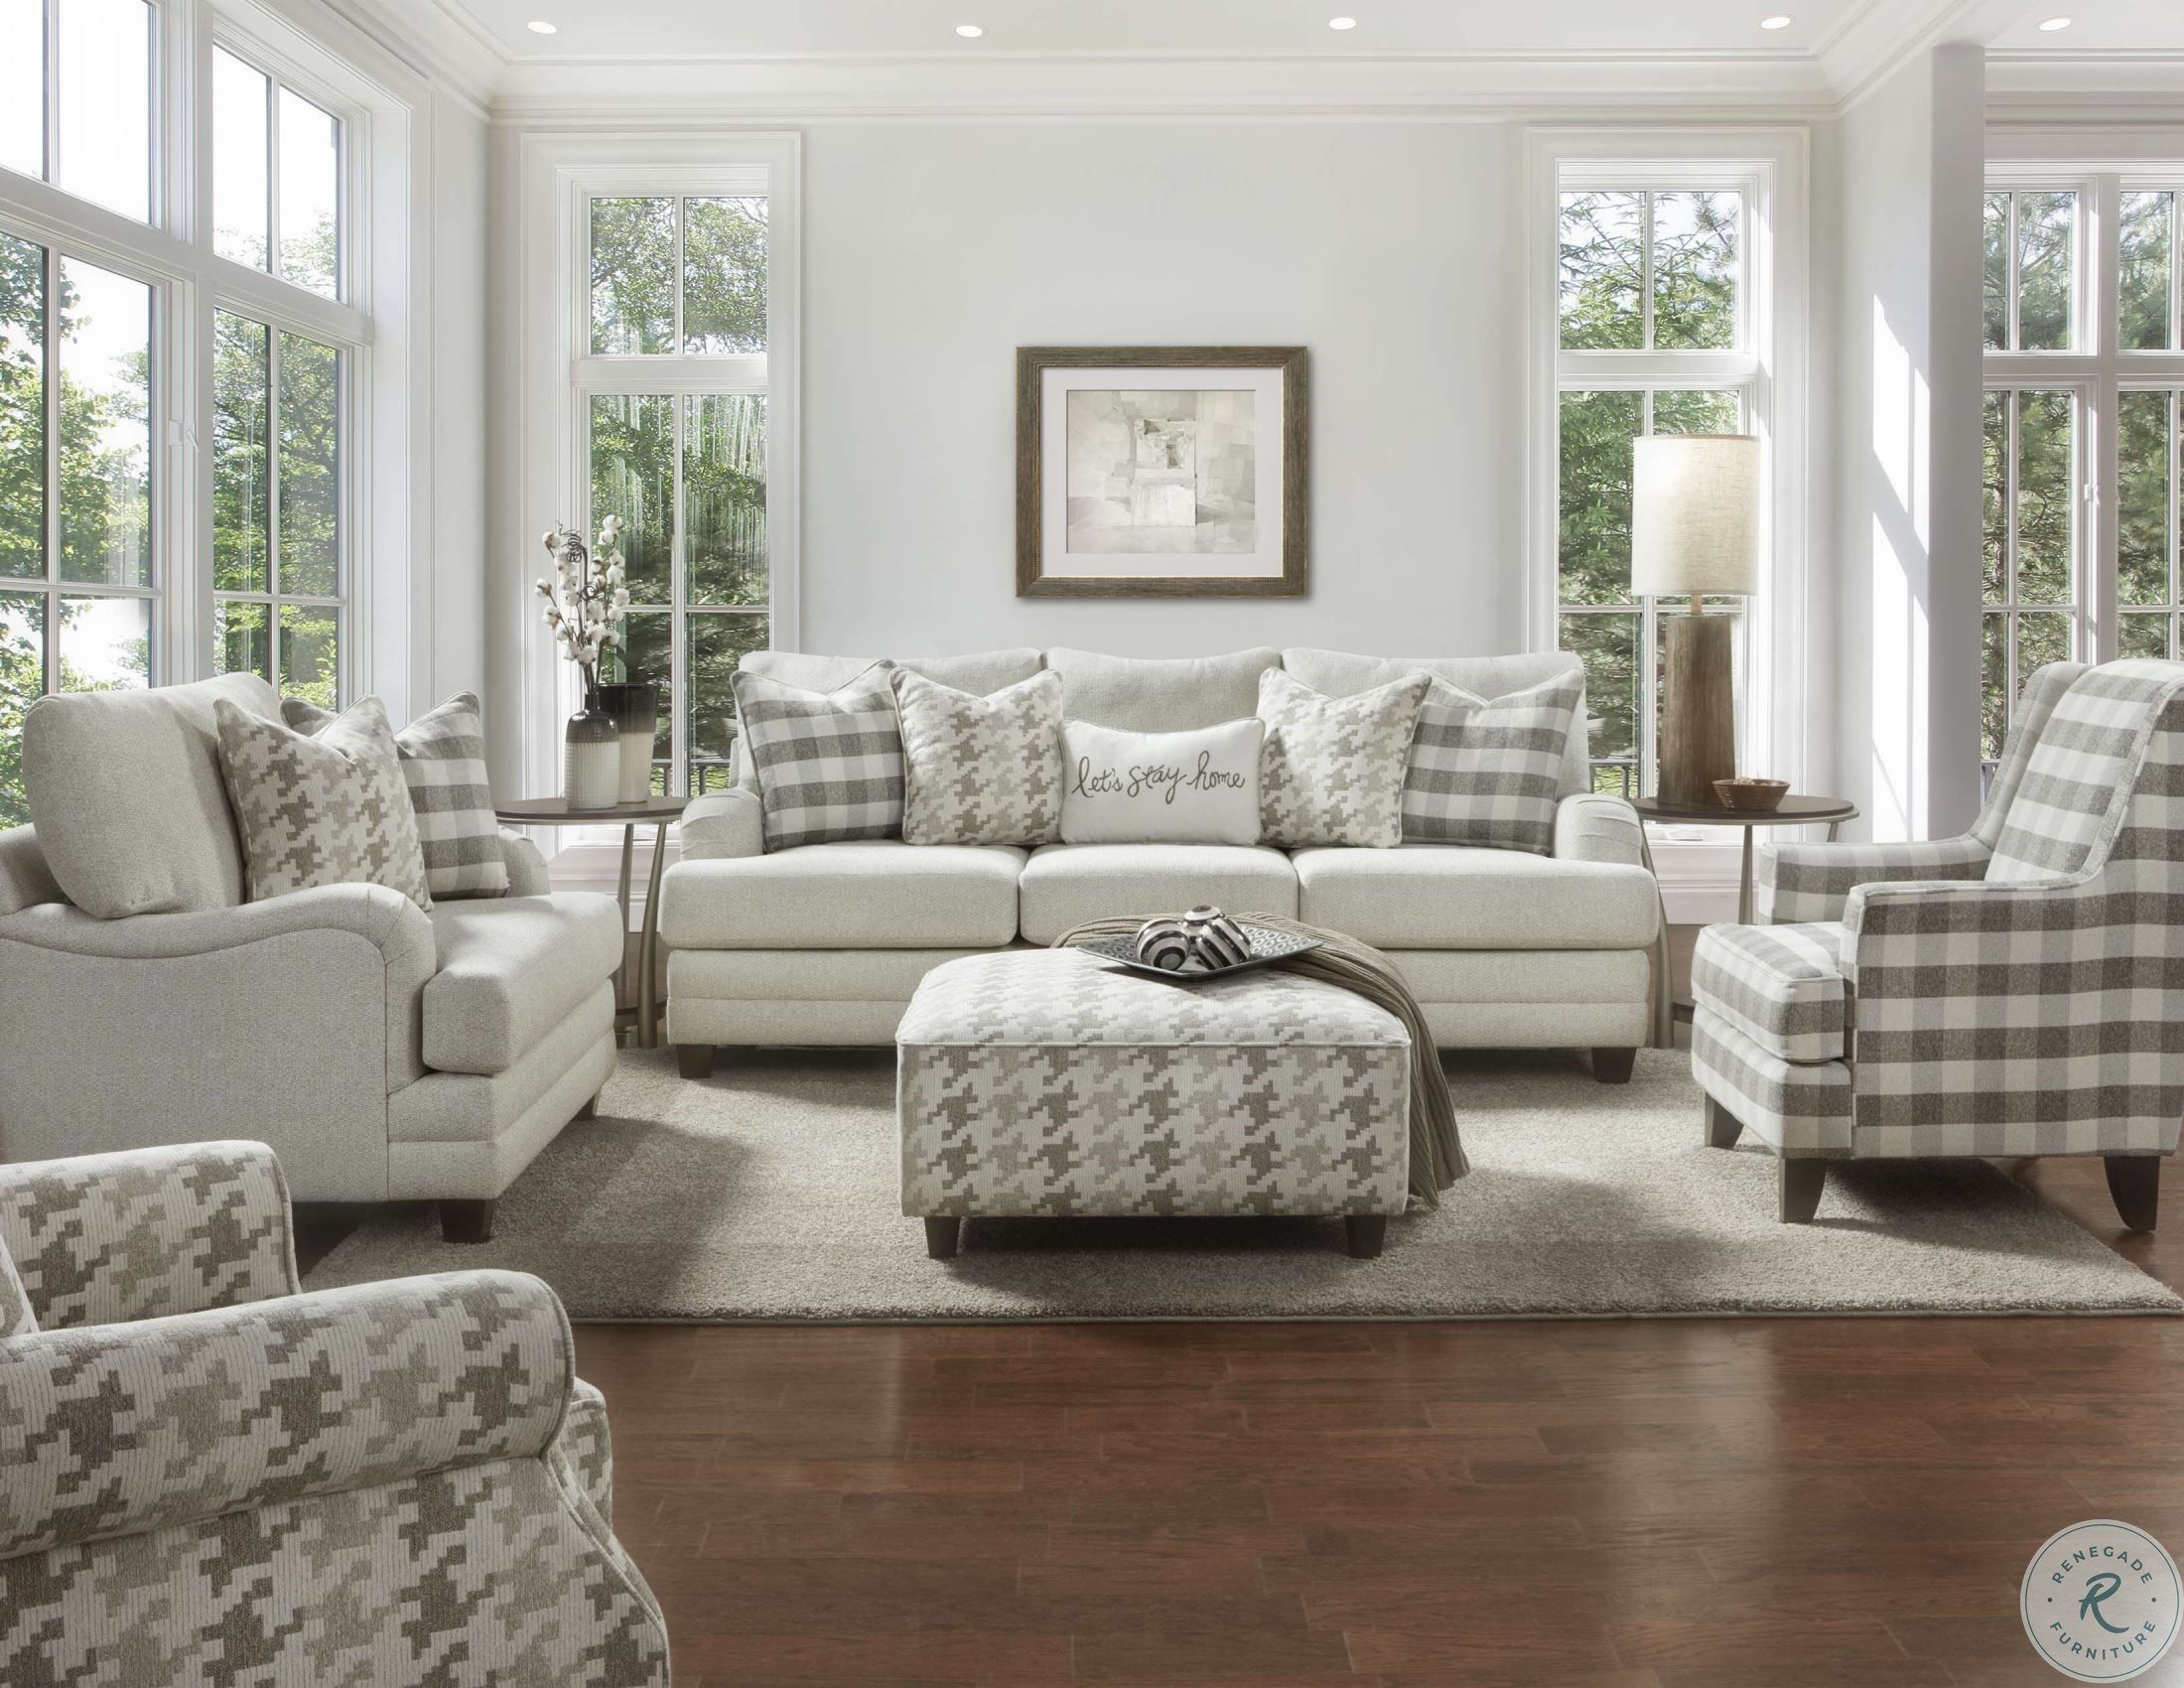 Pin On New House Ideas #soletren #ash #living #room #set